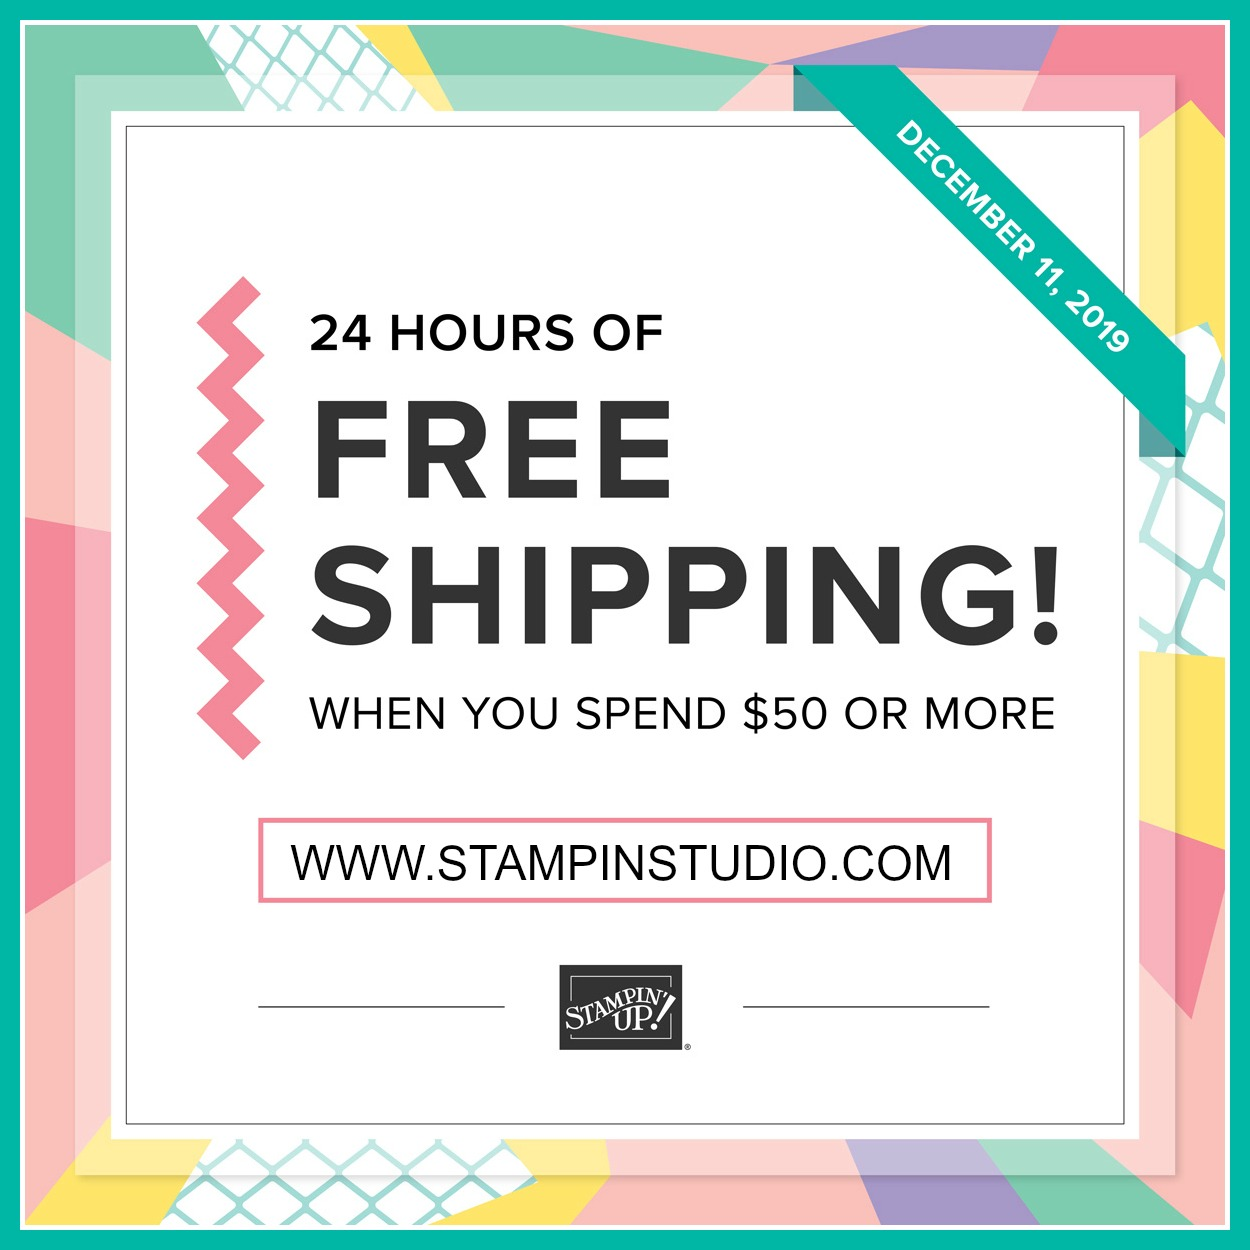 Stampin' Up! Free Shipping, Stampin' Studio